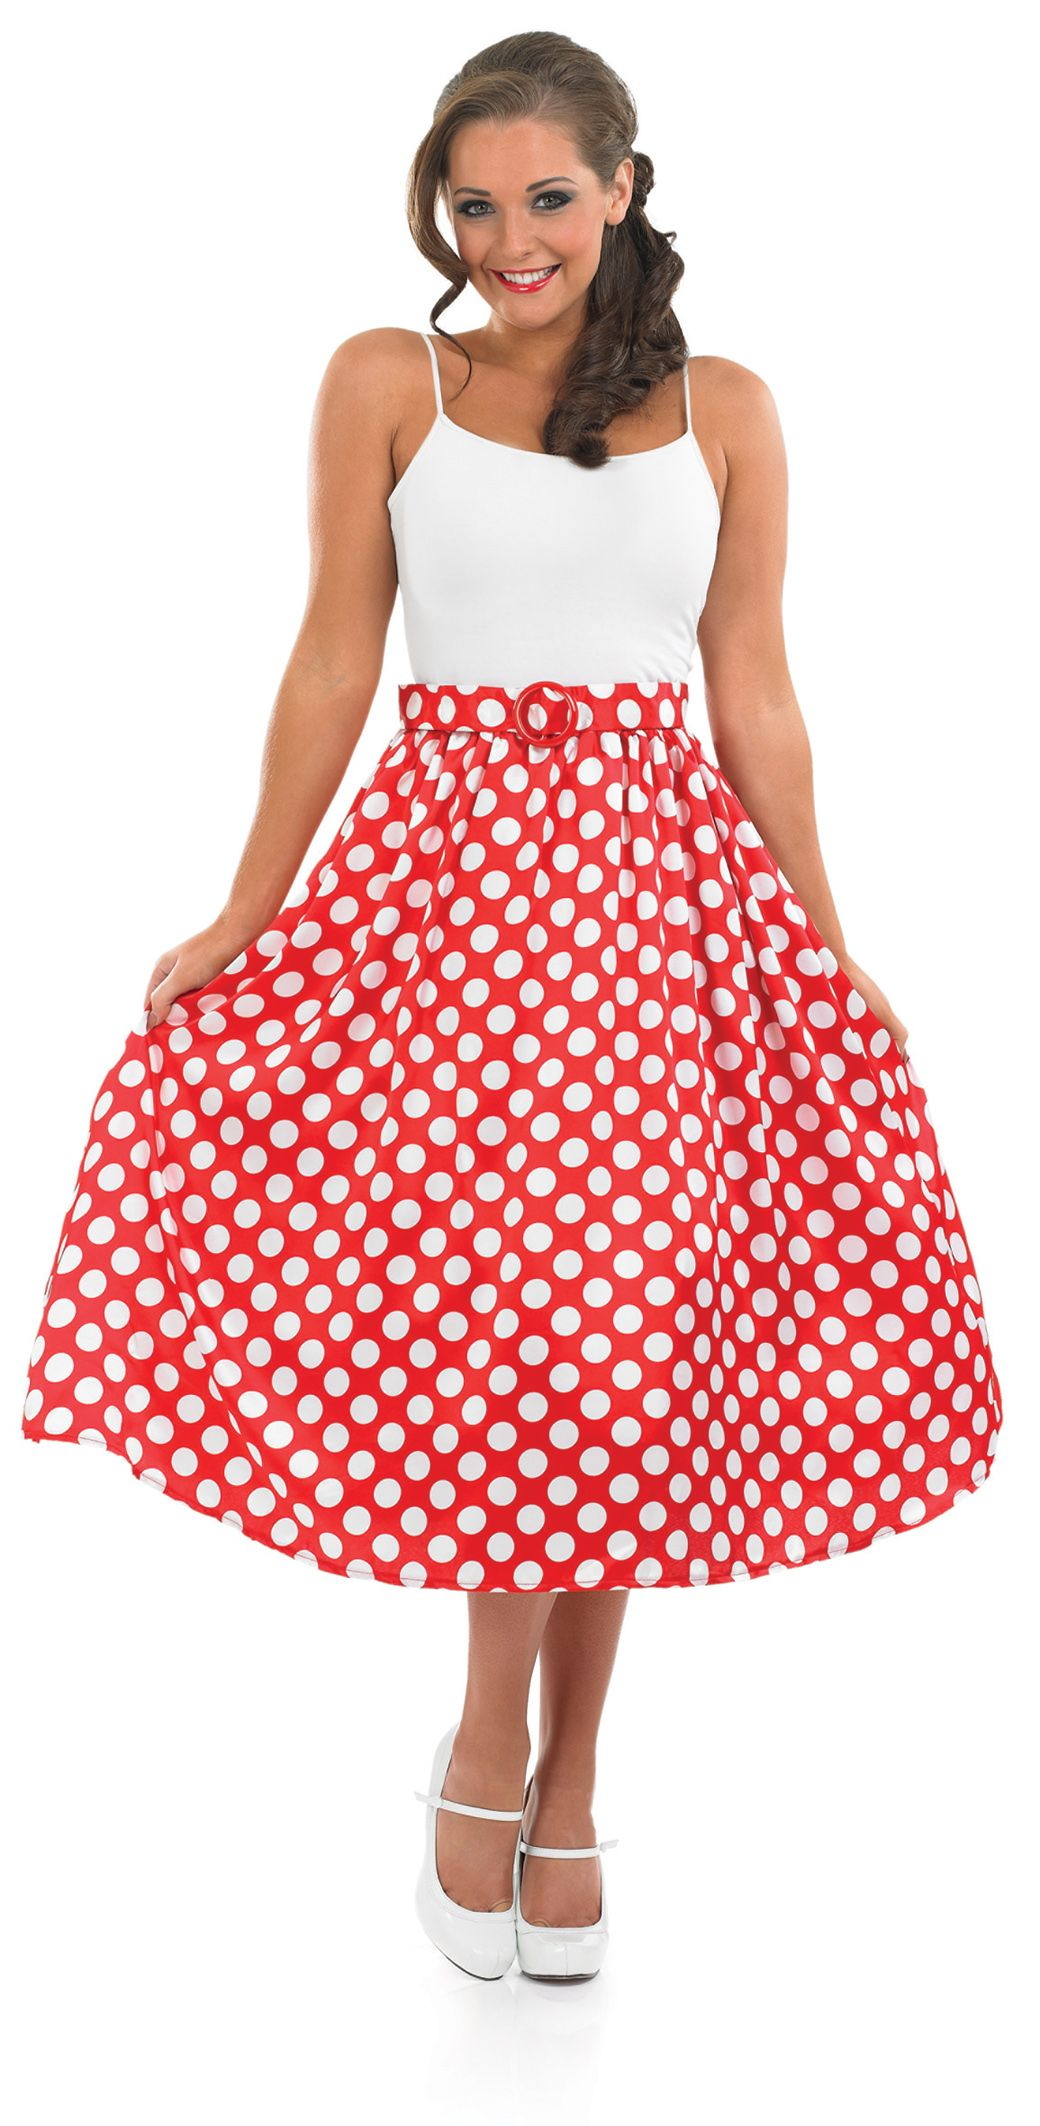 6c381d6adb3a Rock n roll prom dresses. Red Polka Dot Skirt 50's Rock n Roll Ladies 1950s Fancy  Dress Costume UK 8-30 | eBay